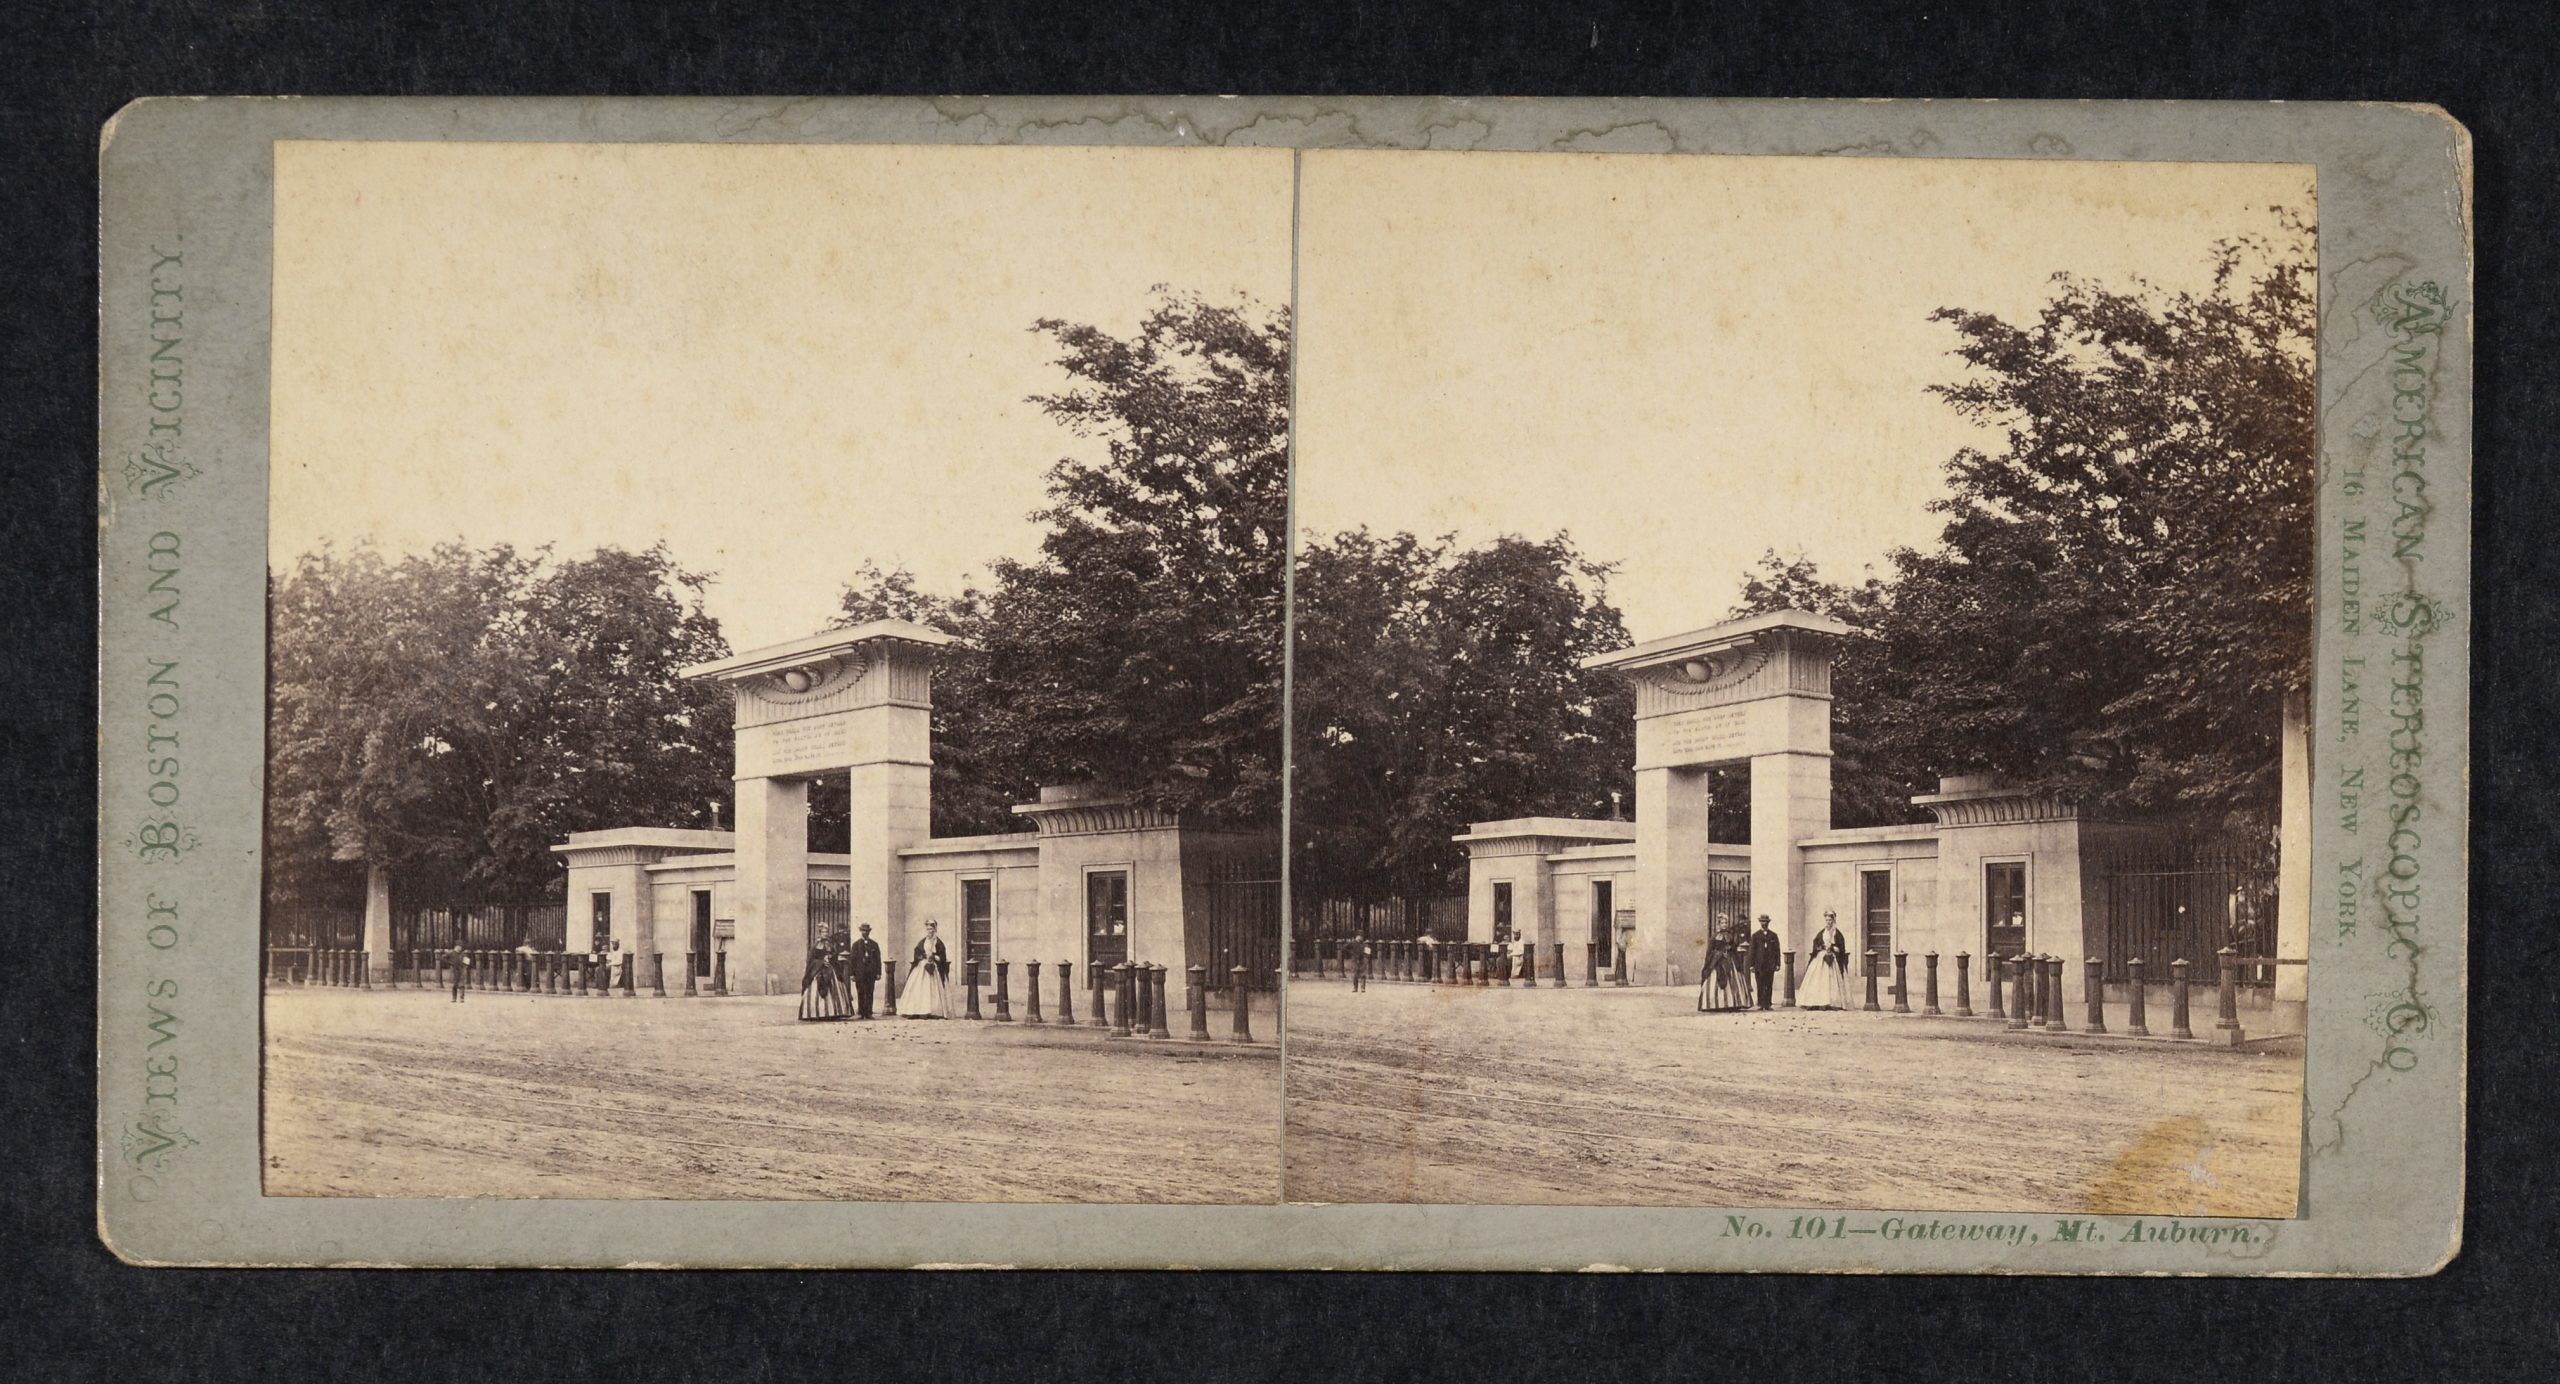 Stereoview of dirt road, Egyptian Revival entrance Gateway, 2 women and 1 man in front.